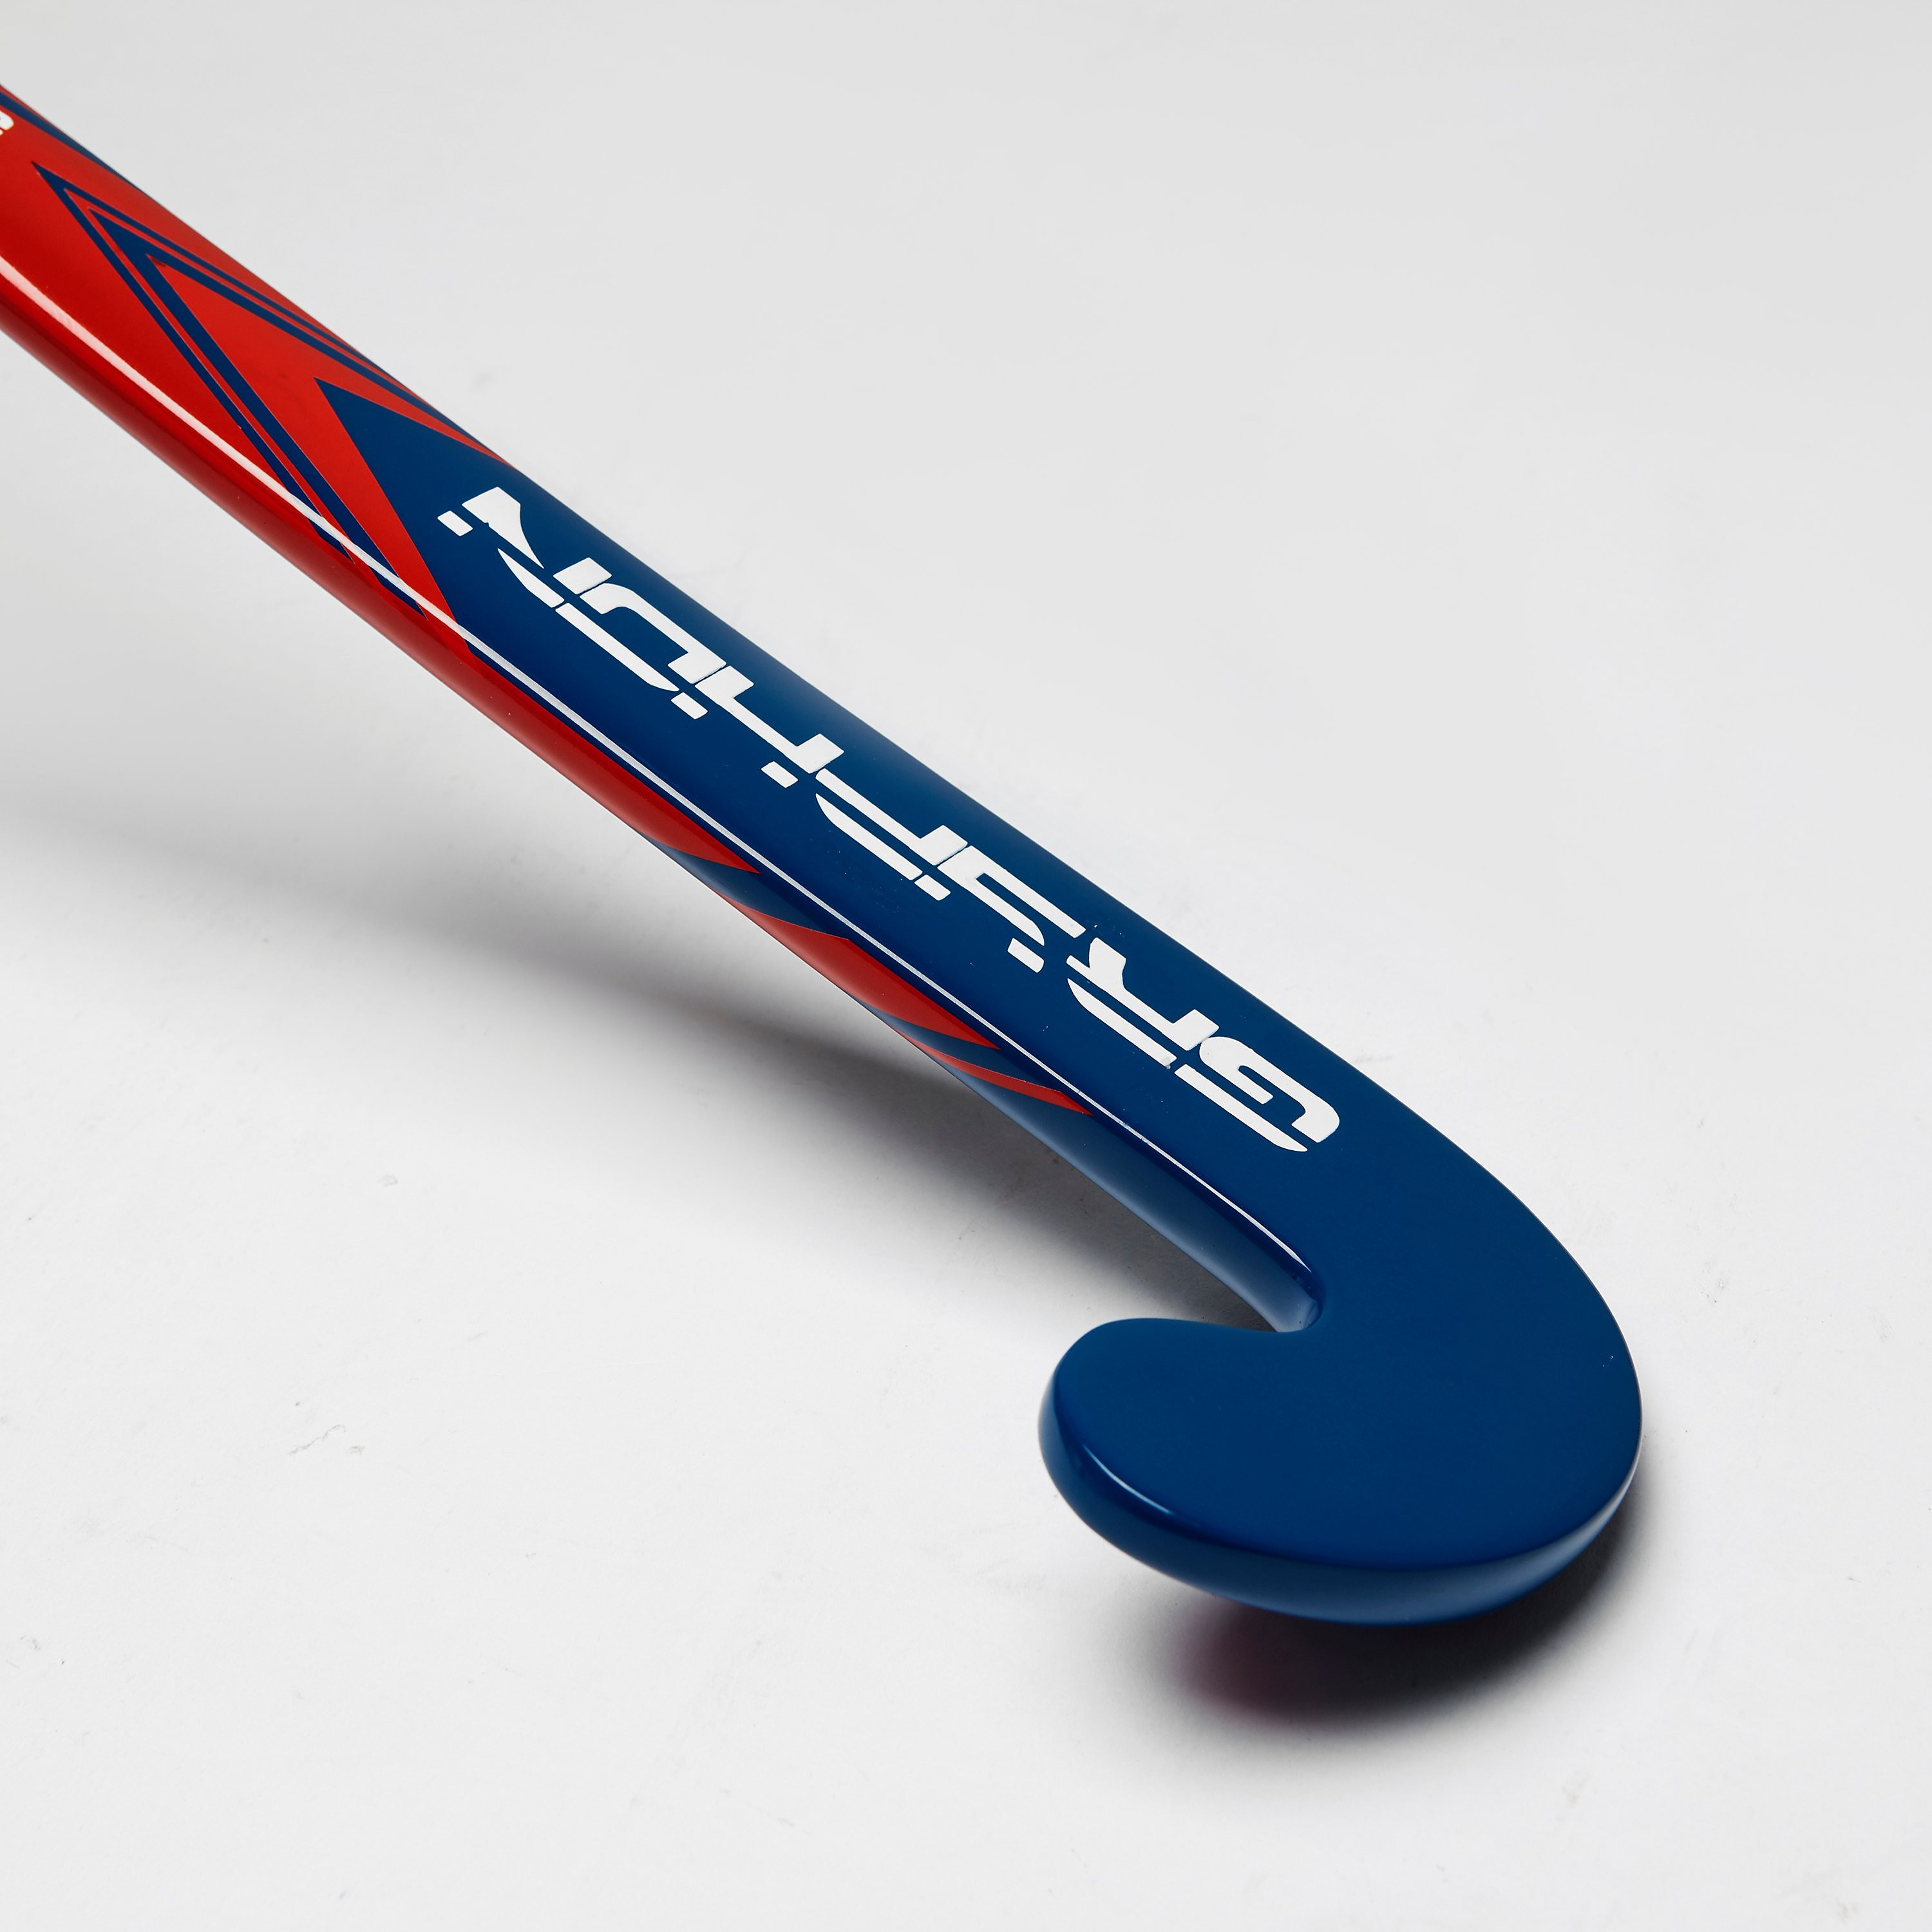 Gryphon Lazer Hockey Stick